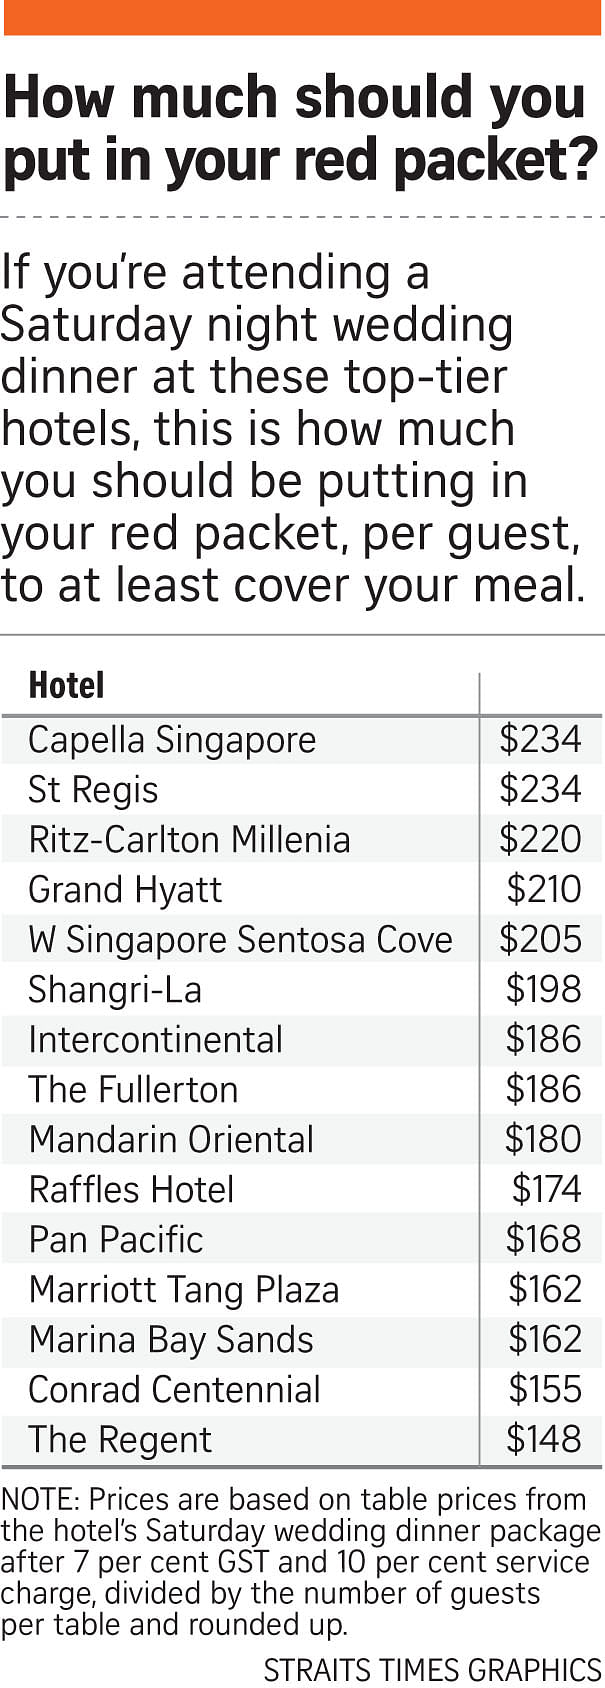 Prices At Top Hotels Near 2 000 Per Table Before Ta Extras Rates Rising 5 10 Yearly